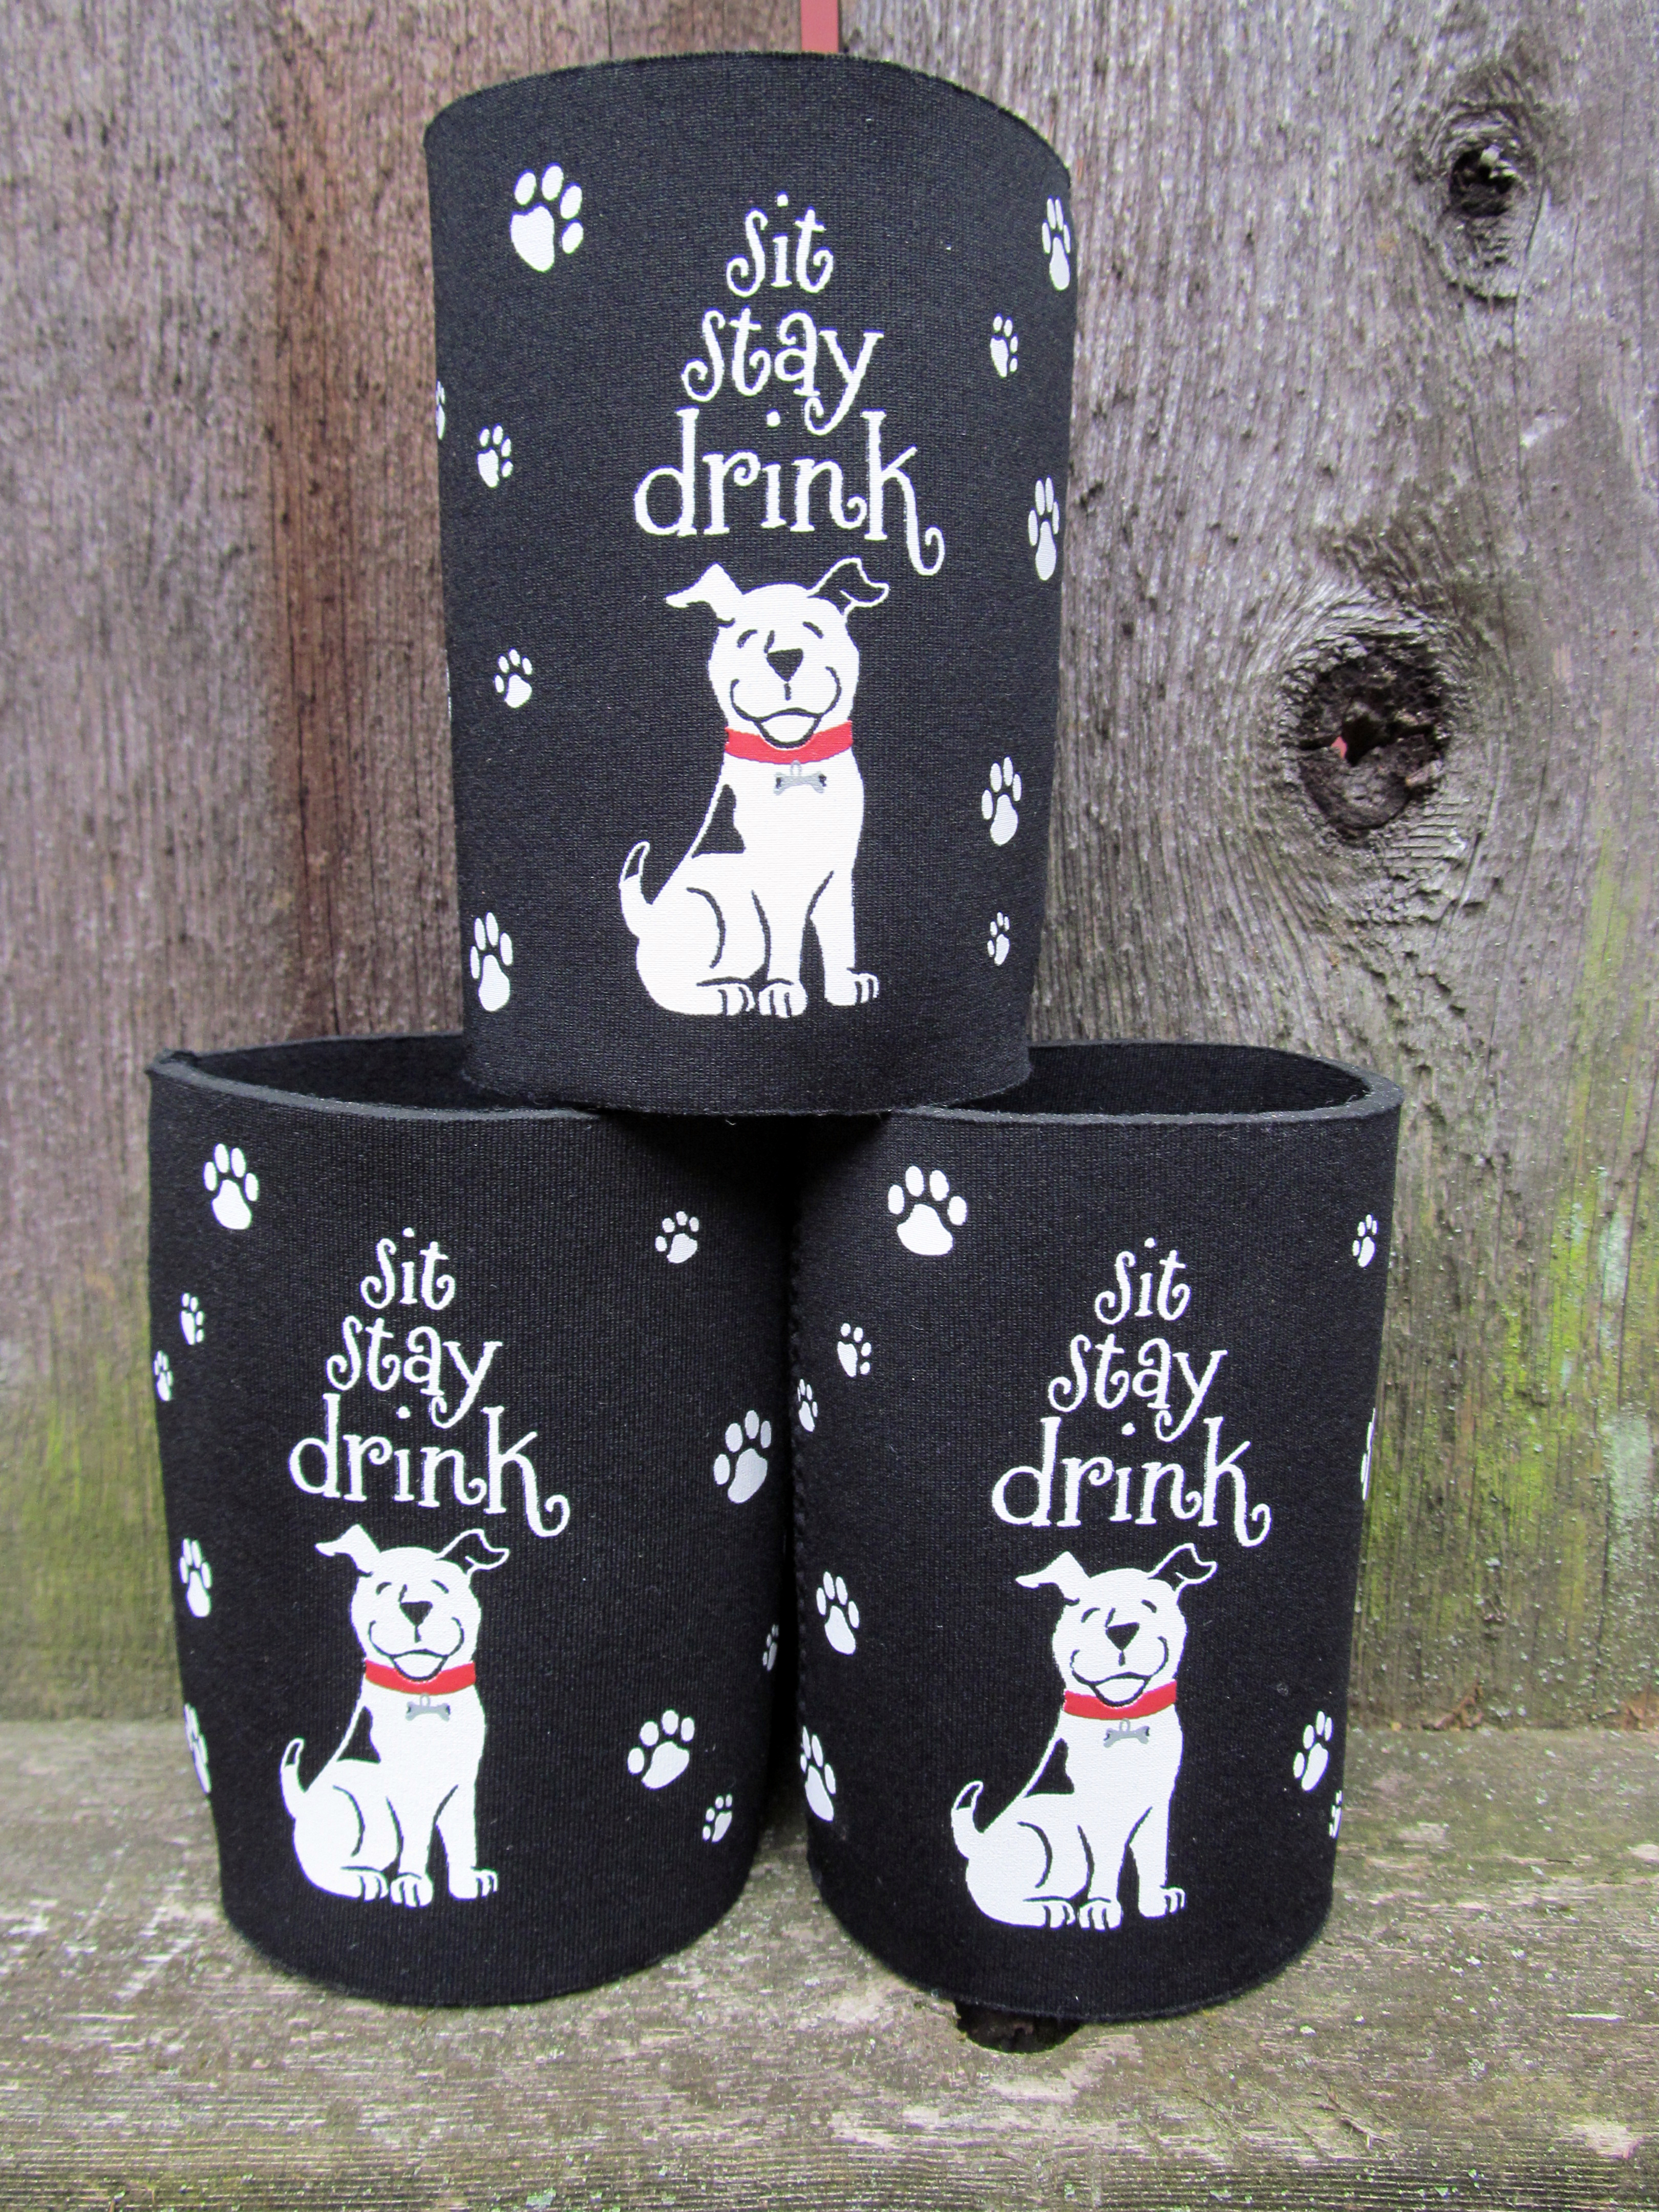 Delightful Gifts From The Dog Part - 4: Sit-stay-koozie.jpg